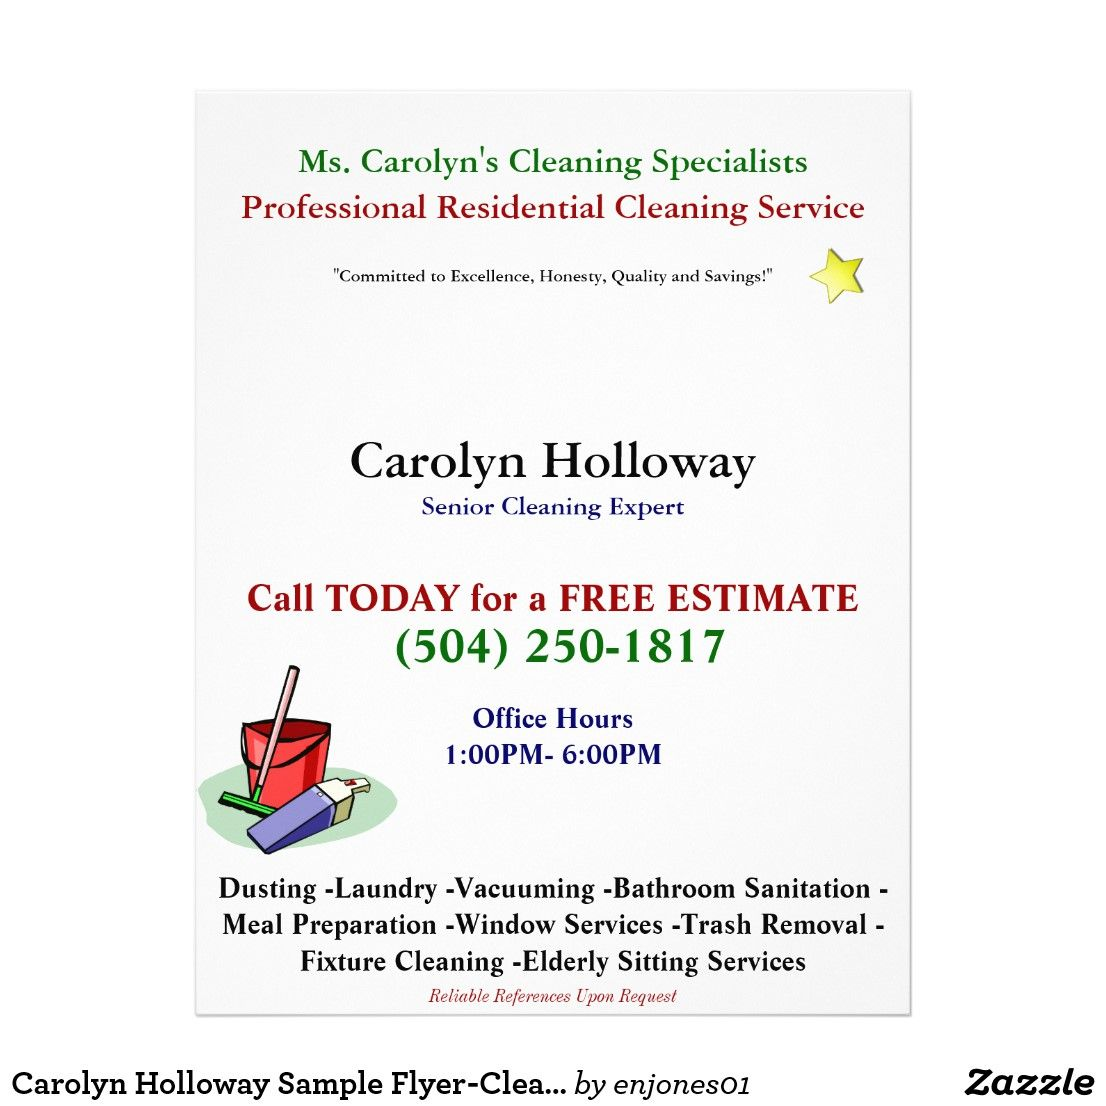 Carolyn Holloway Sample FlyerCleaning Services Flyer